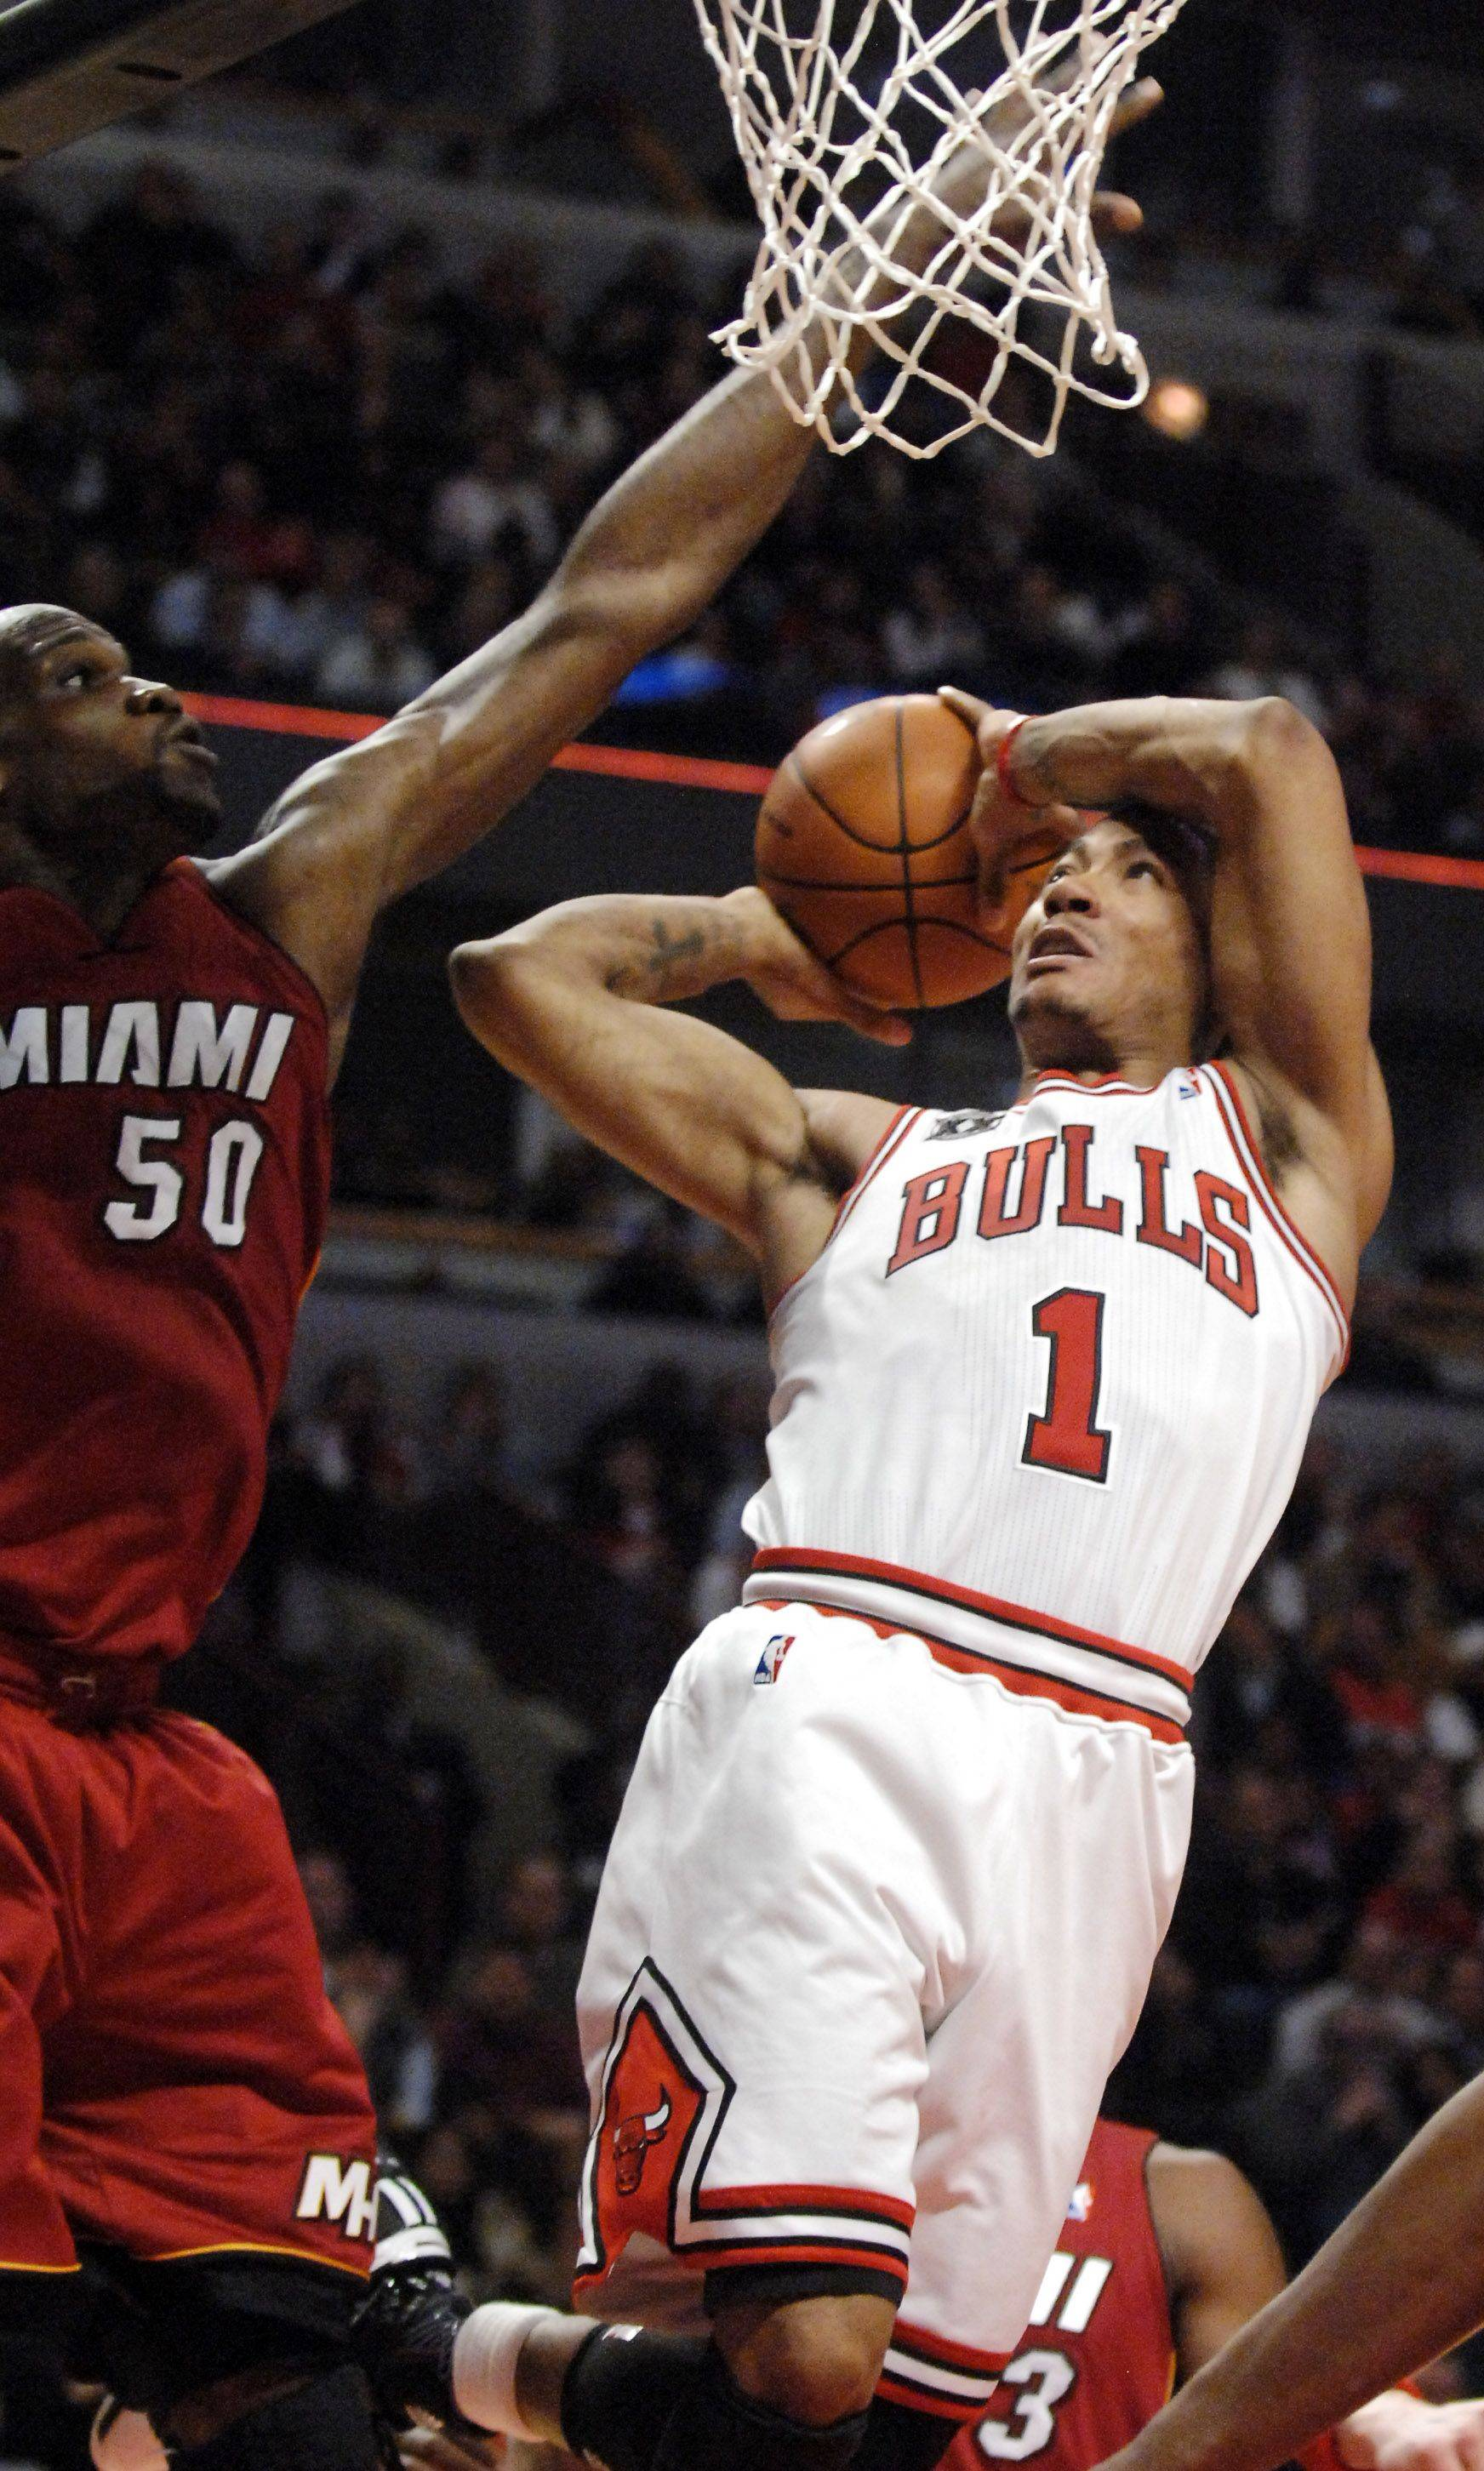 Chicago Bulls point guard Derrick Rose goes to the basket and is defended by Miami Heat center Joel Anthony during Saturday's game at the United Center in Chicago.